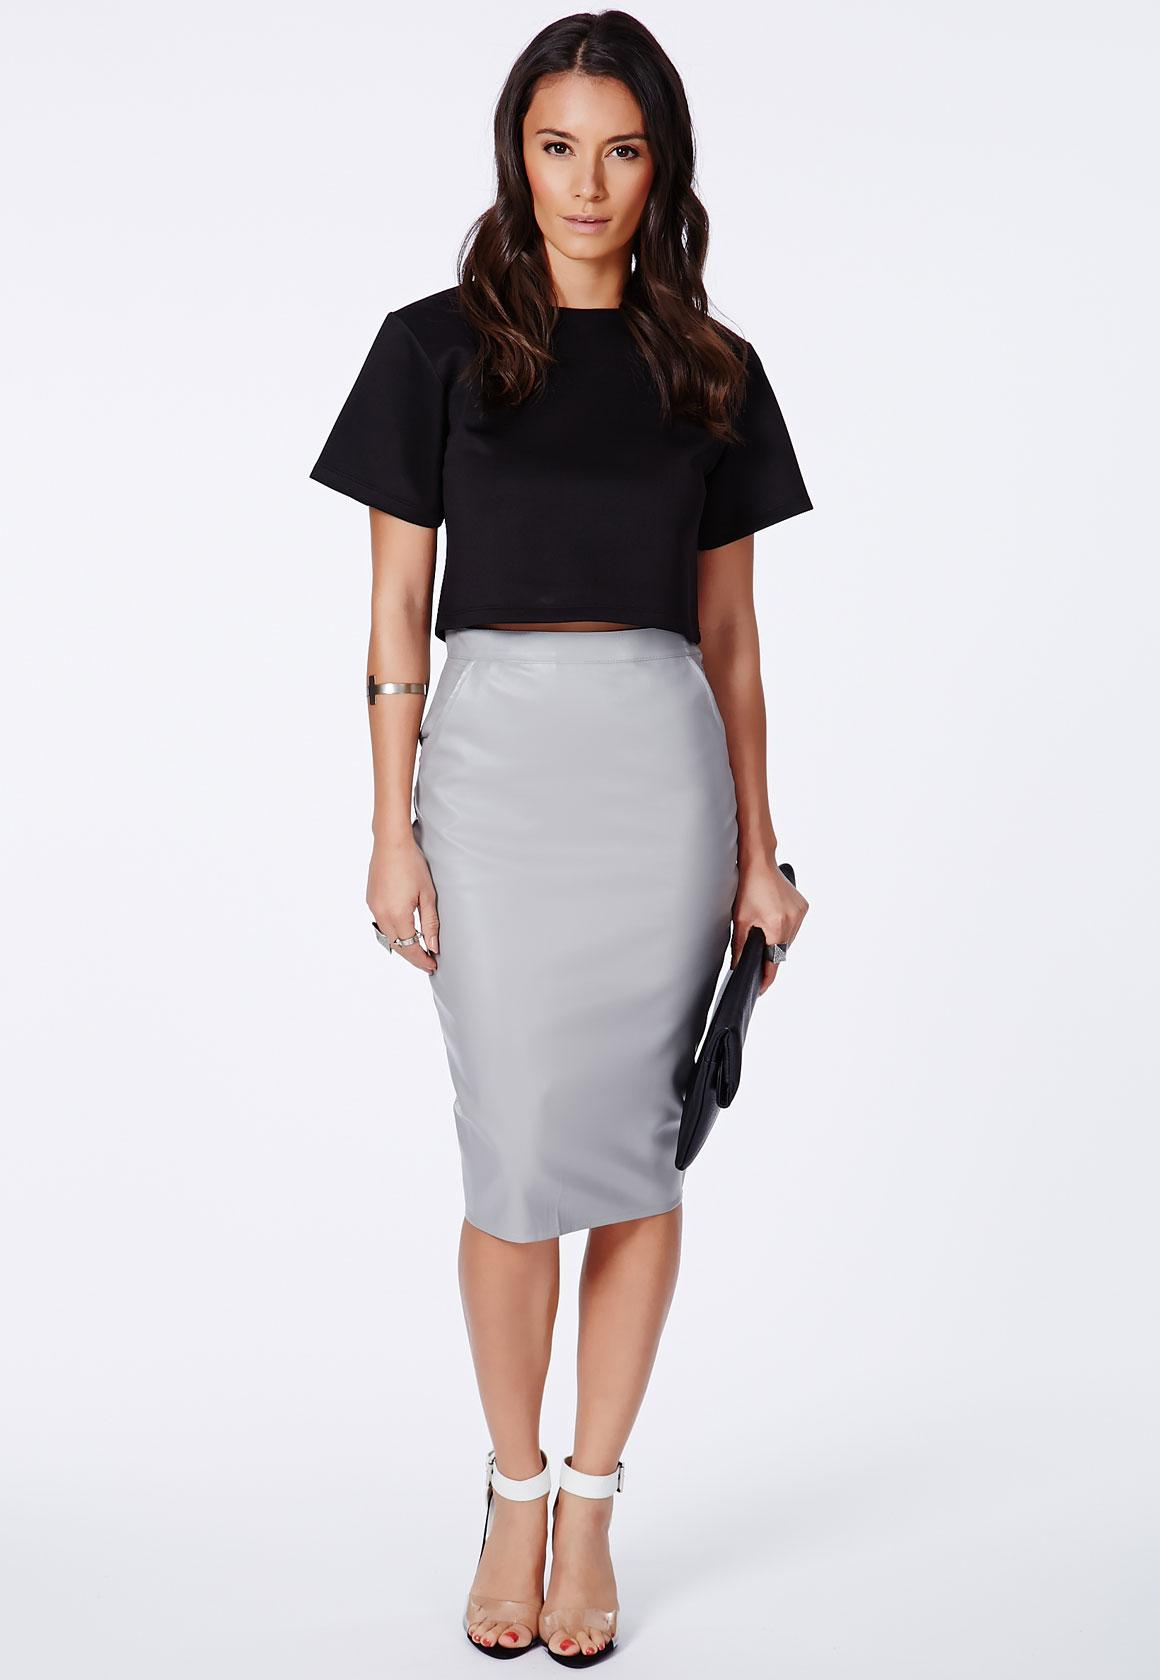 Leather Skirt Nz - Dress Ala